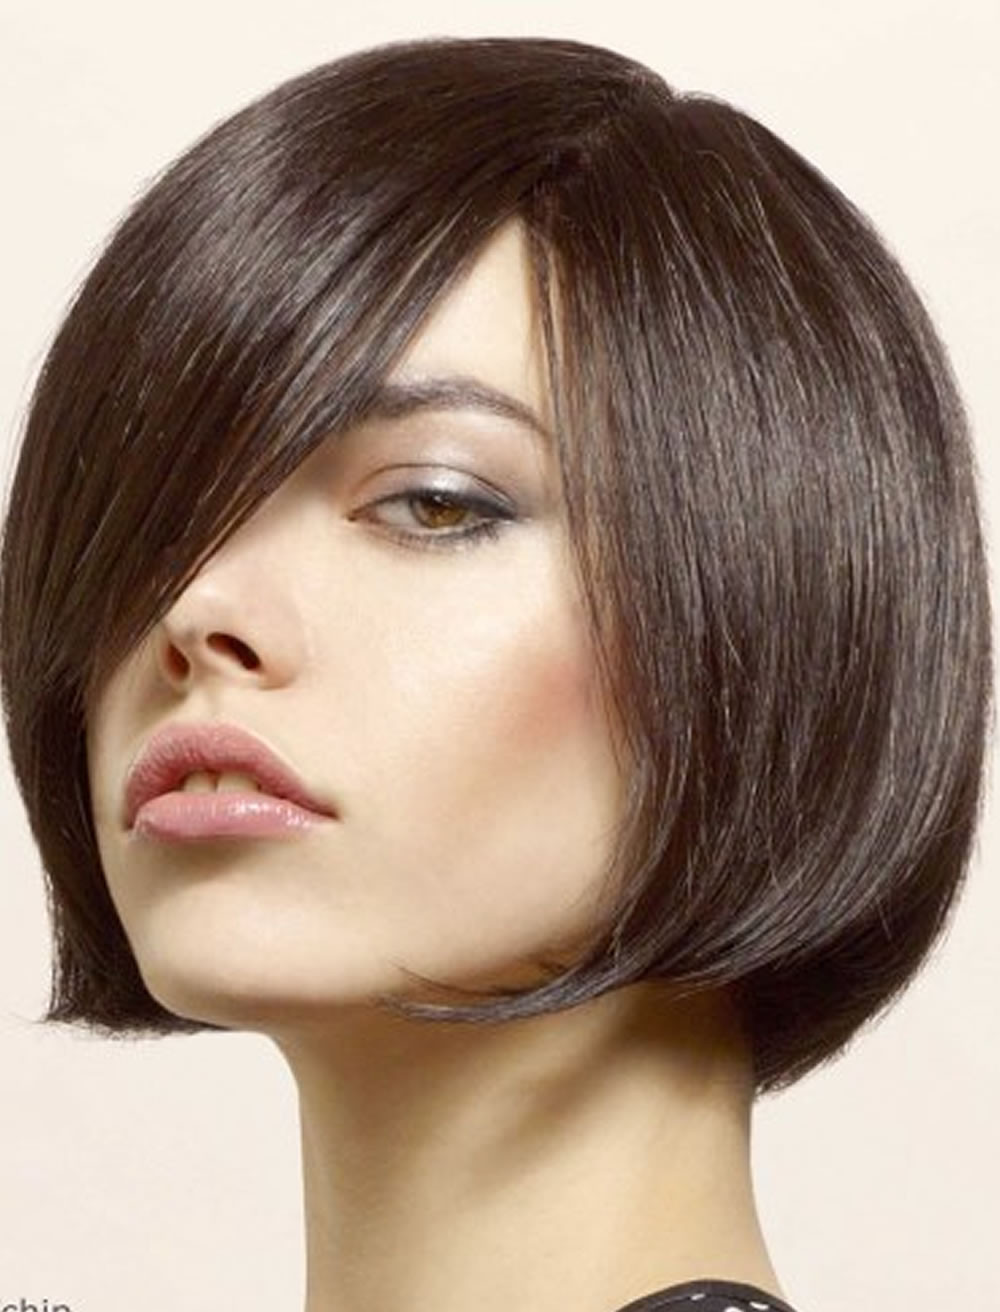 Hairstyles Bob  22 Amazing Bob Haircuts and Hairstyles for Women 2017 2018